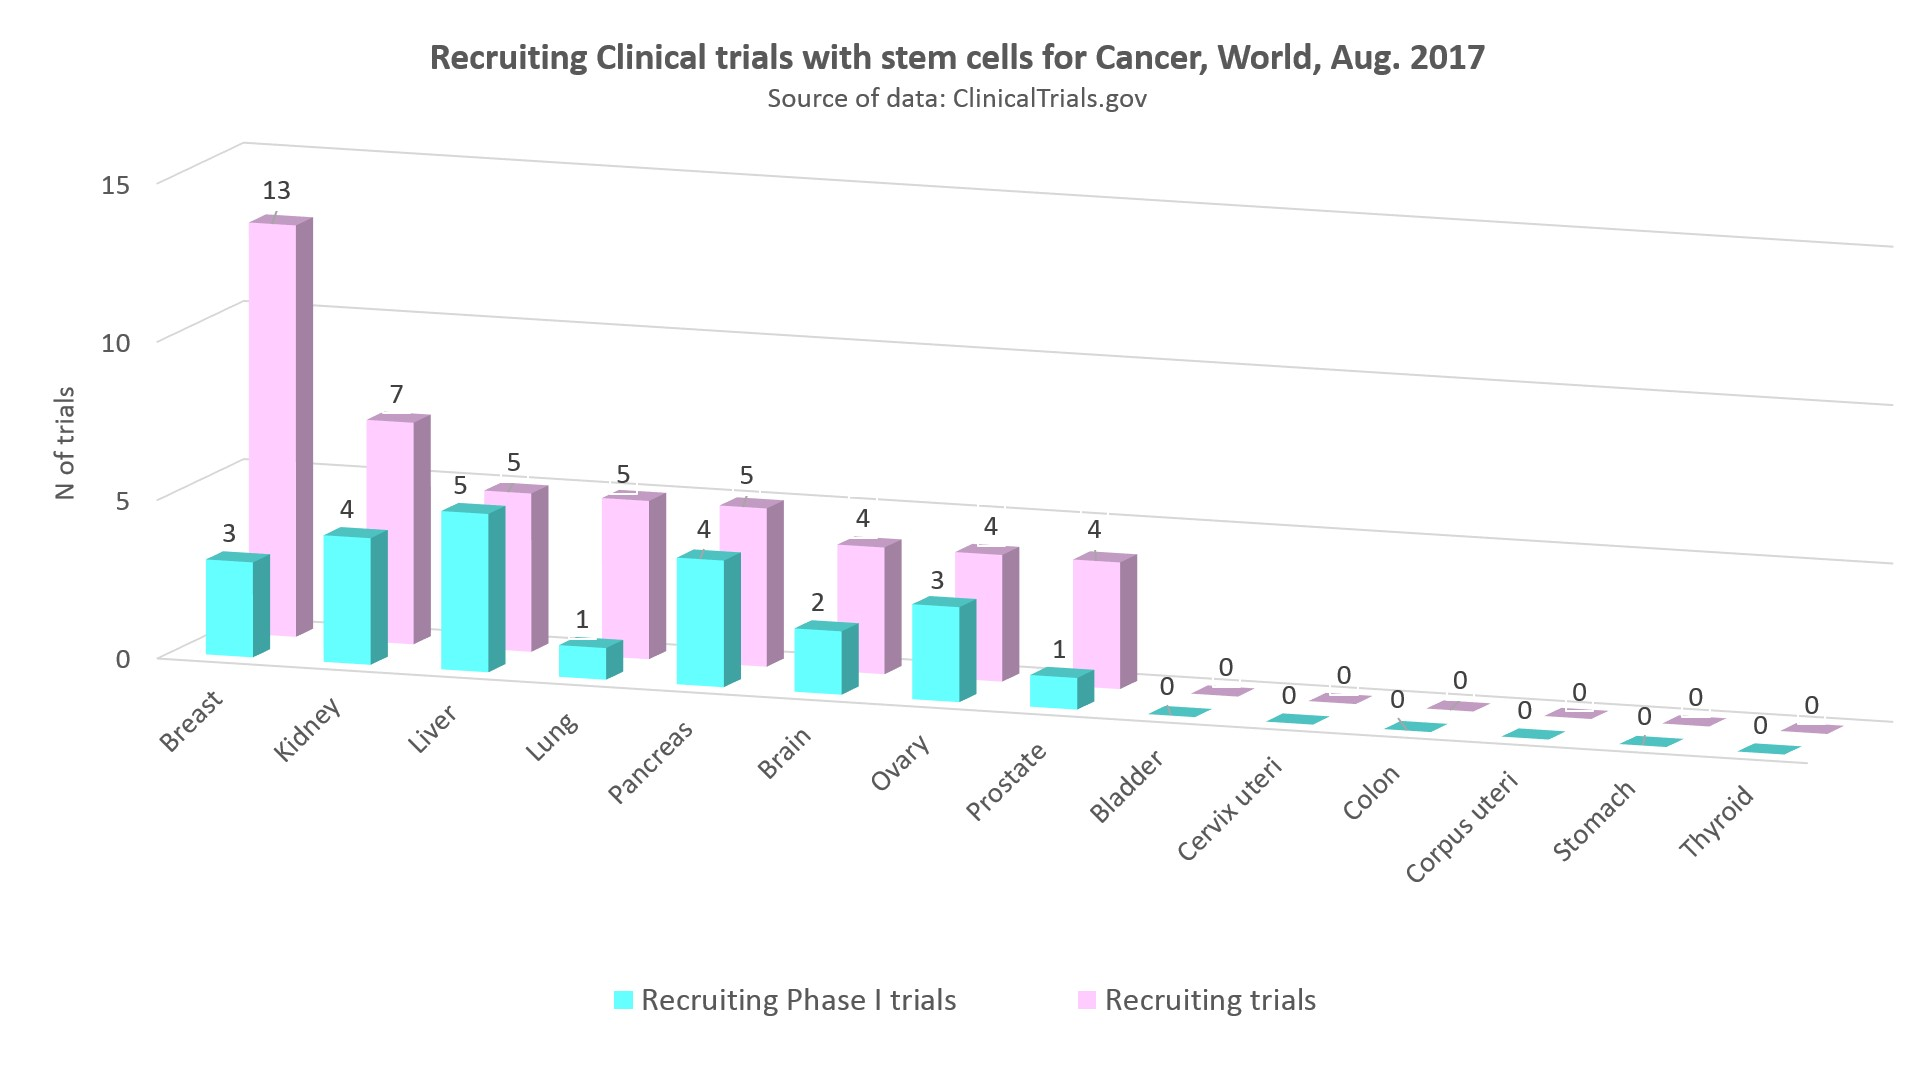 recruiting clinical trials with stem cells for cancer worldwide, August 2017